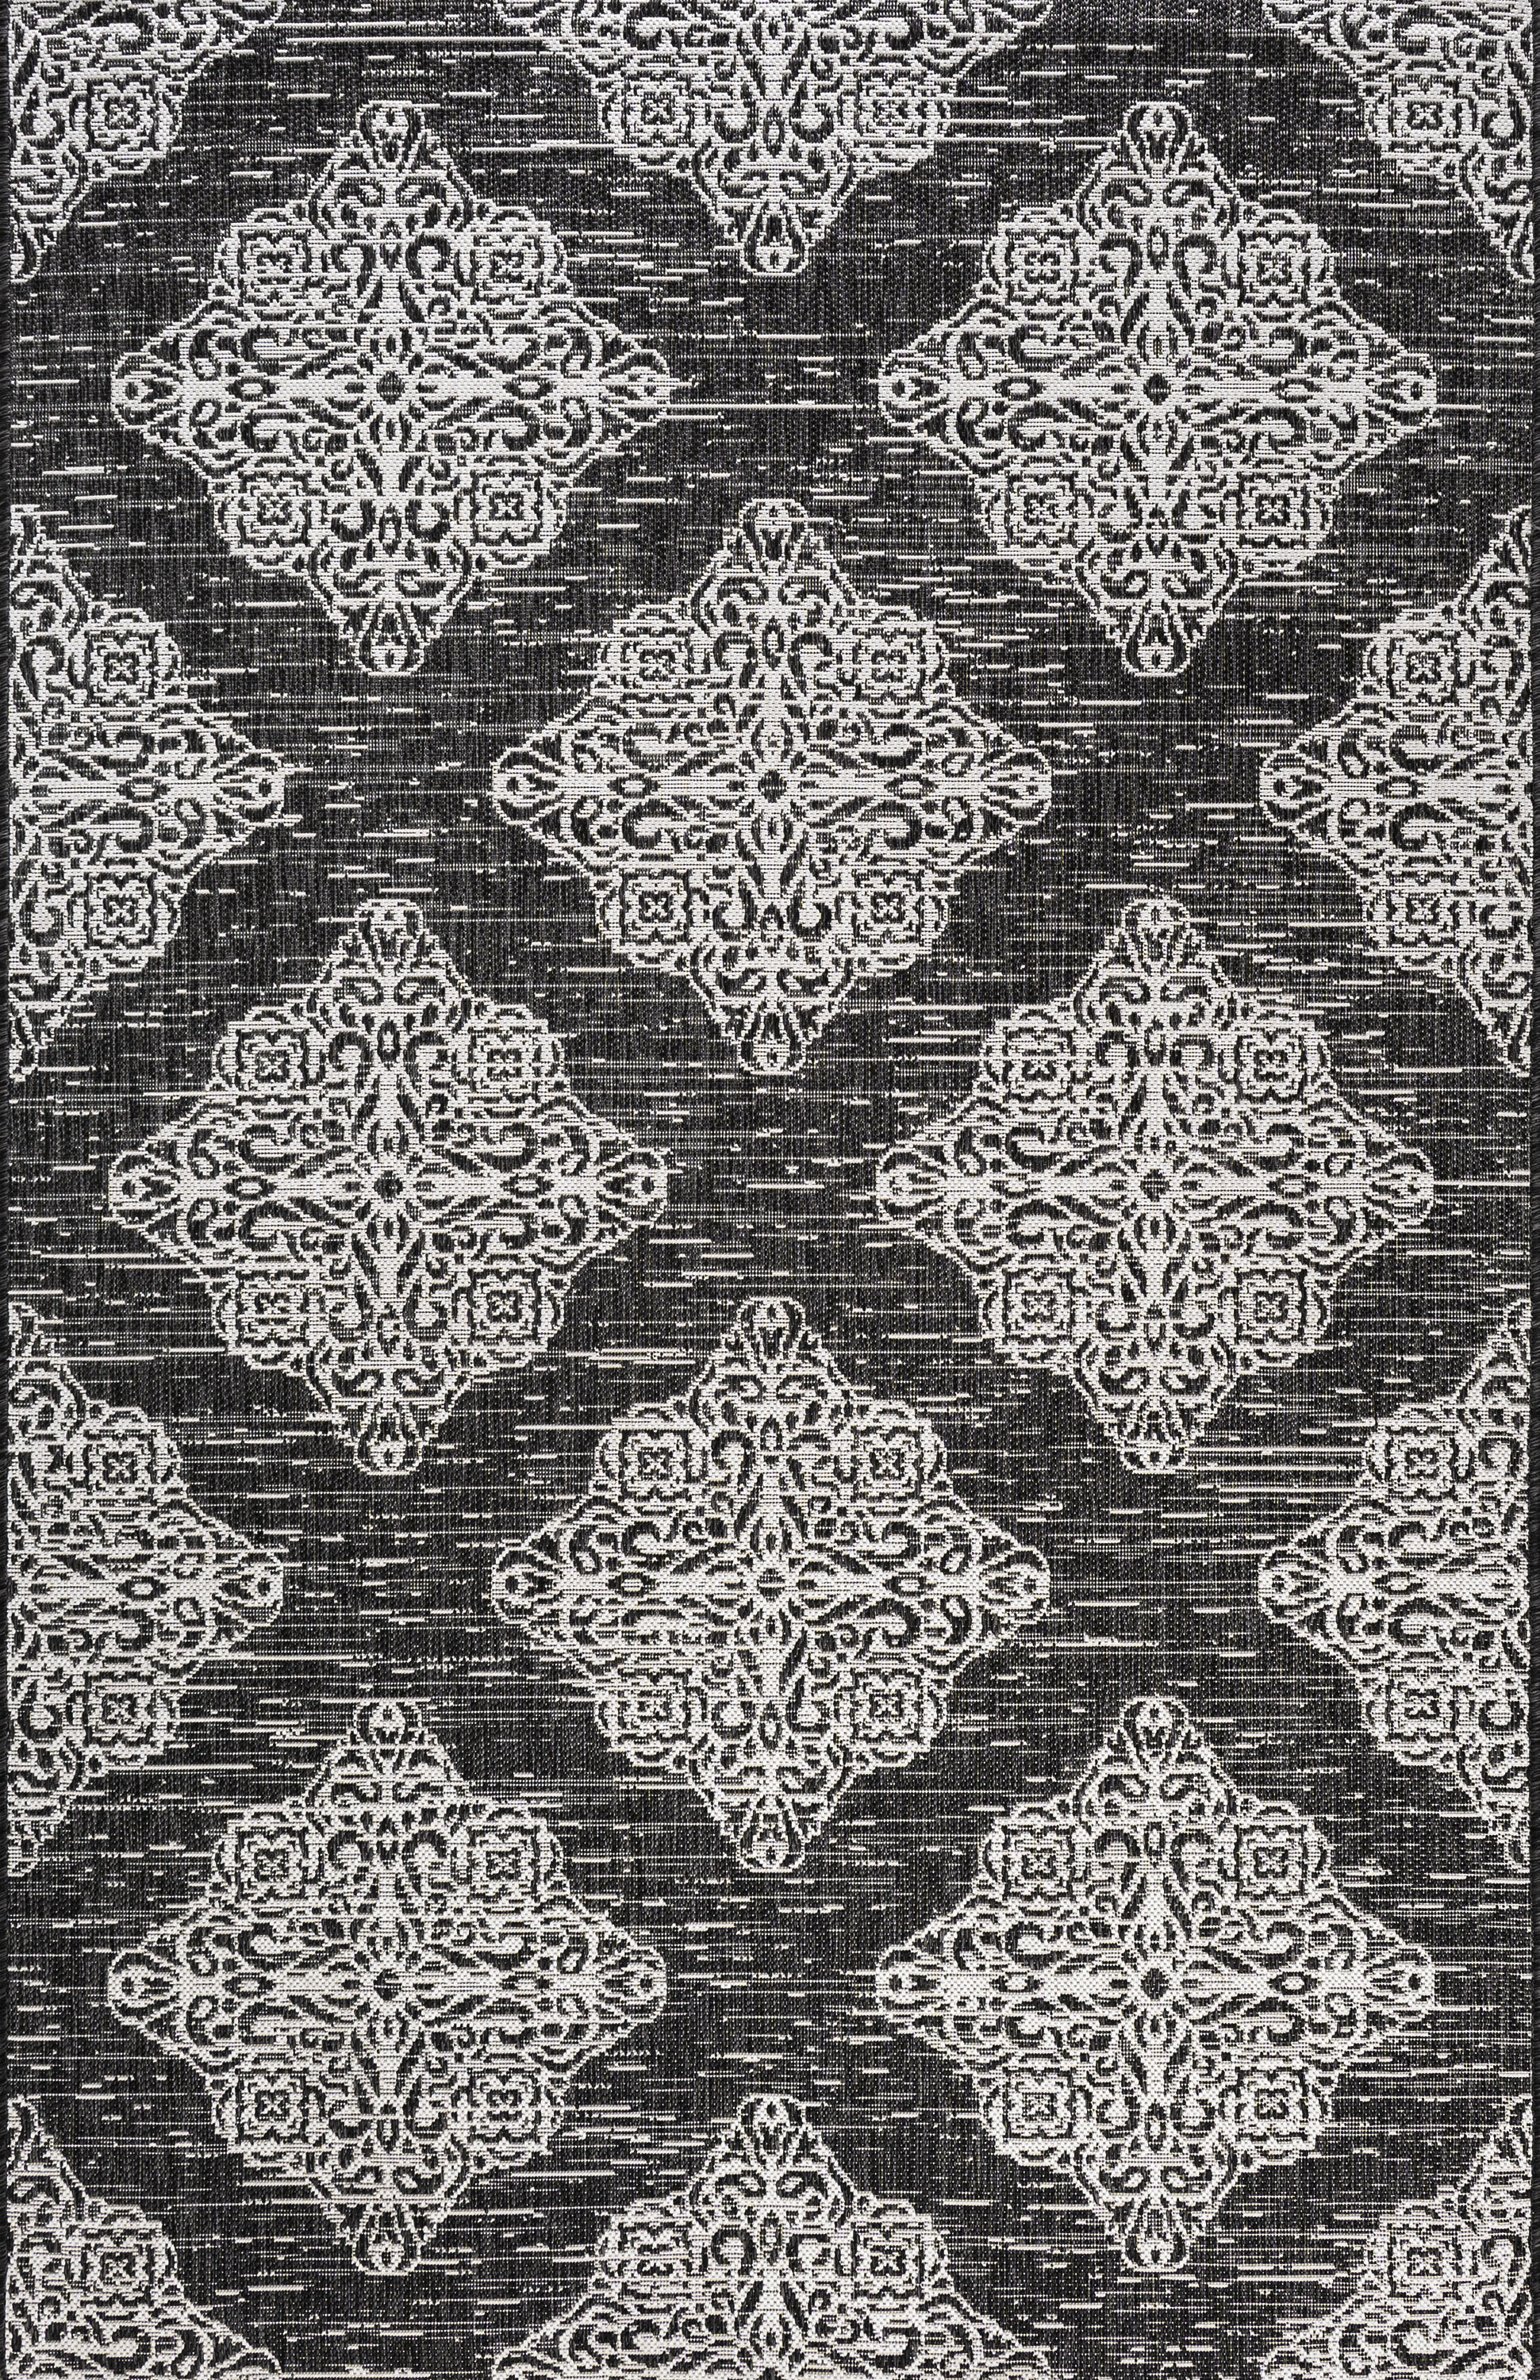 Tuscany Ornate Medallions Indoor/Outdoor Black/Ivory 5 ft. x 8 ft. Area Rug